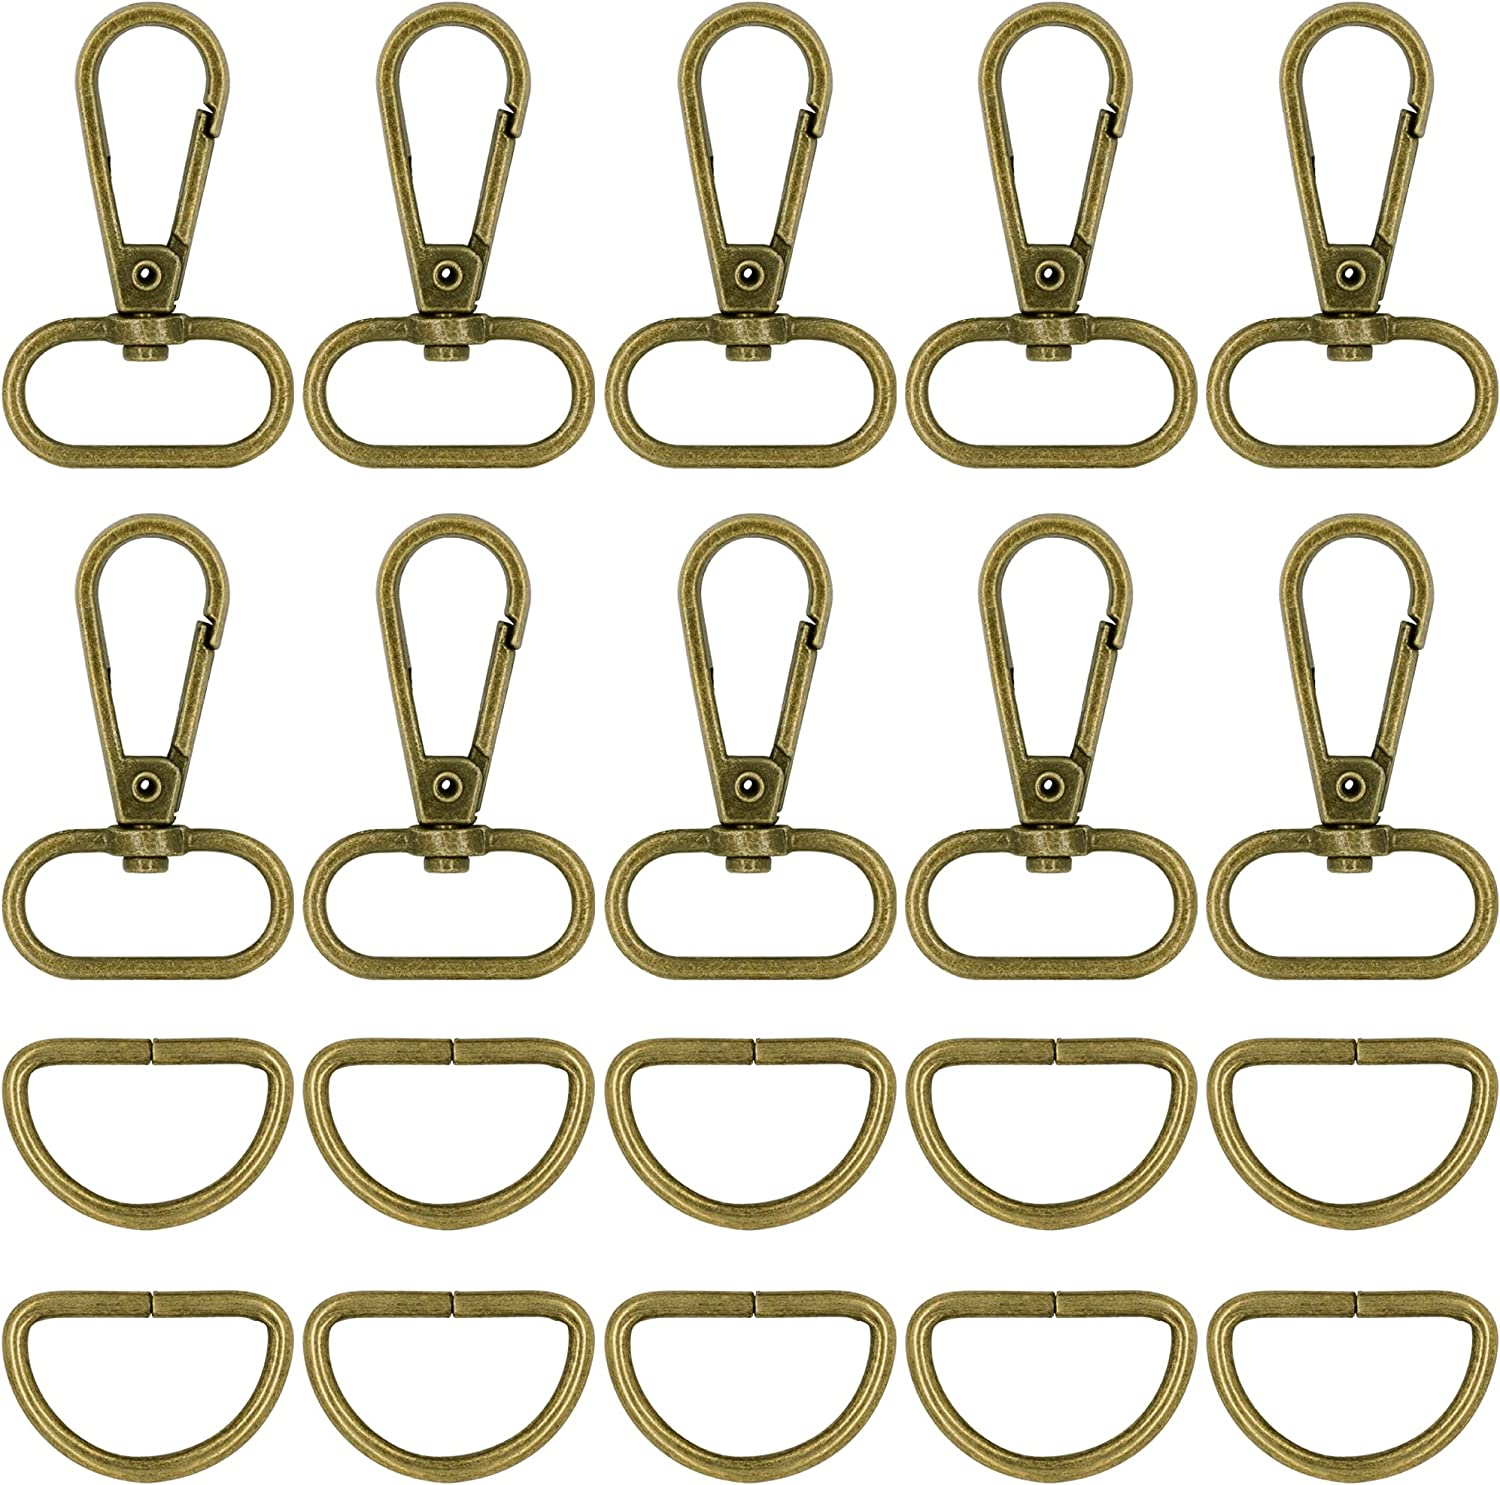 STORALIT 60 Pcs Keychain Bulk with Rolle 100% quality warranty Clip Credence Swivel Hook Slides